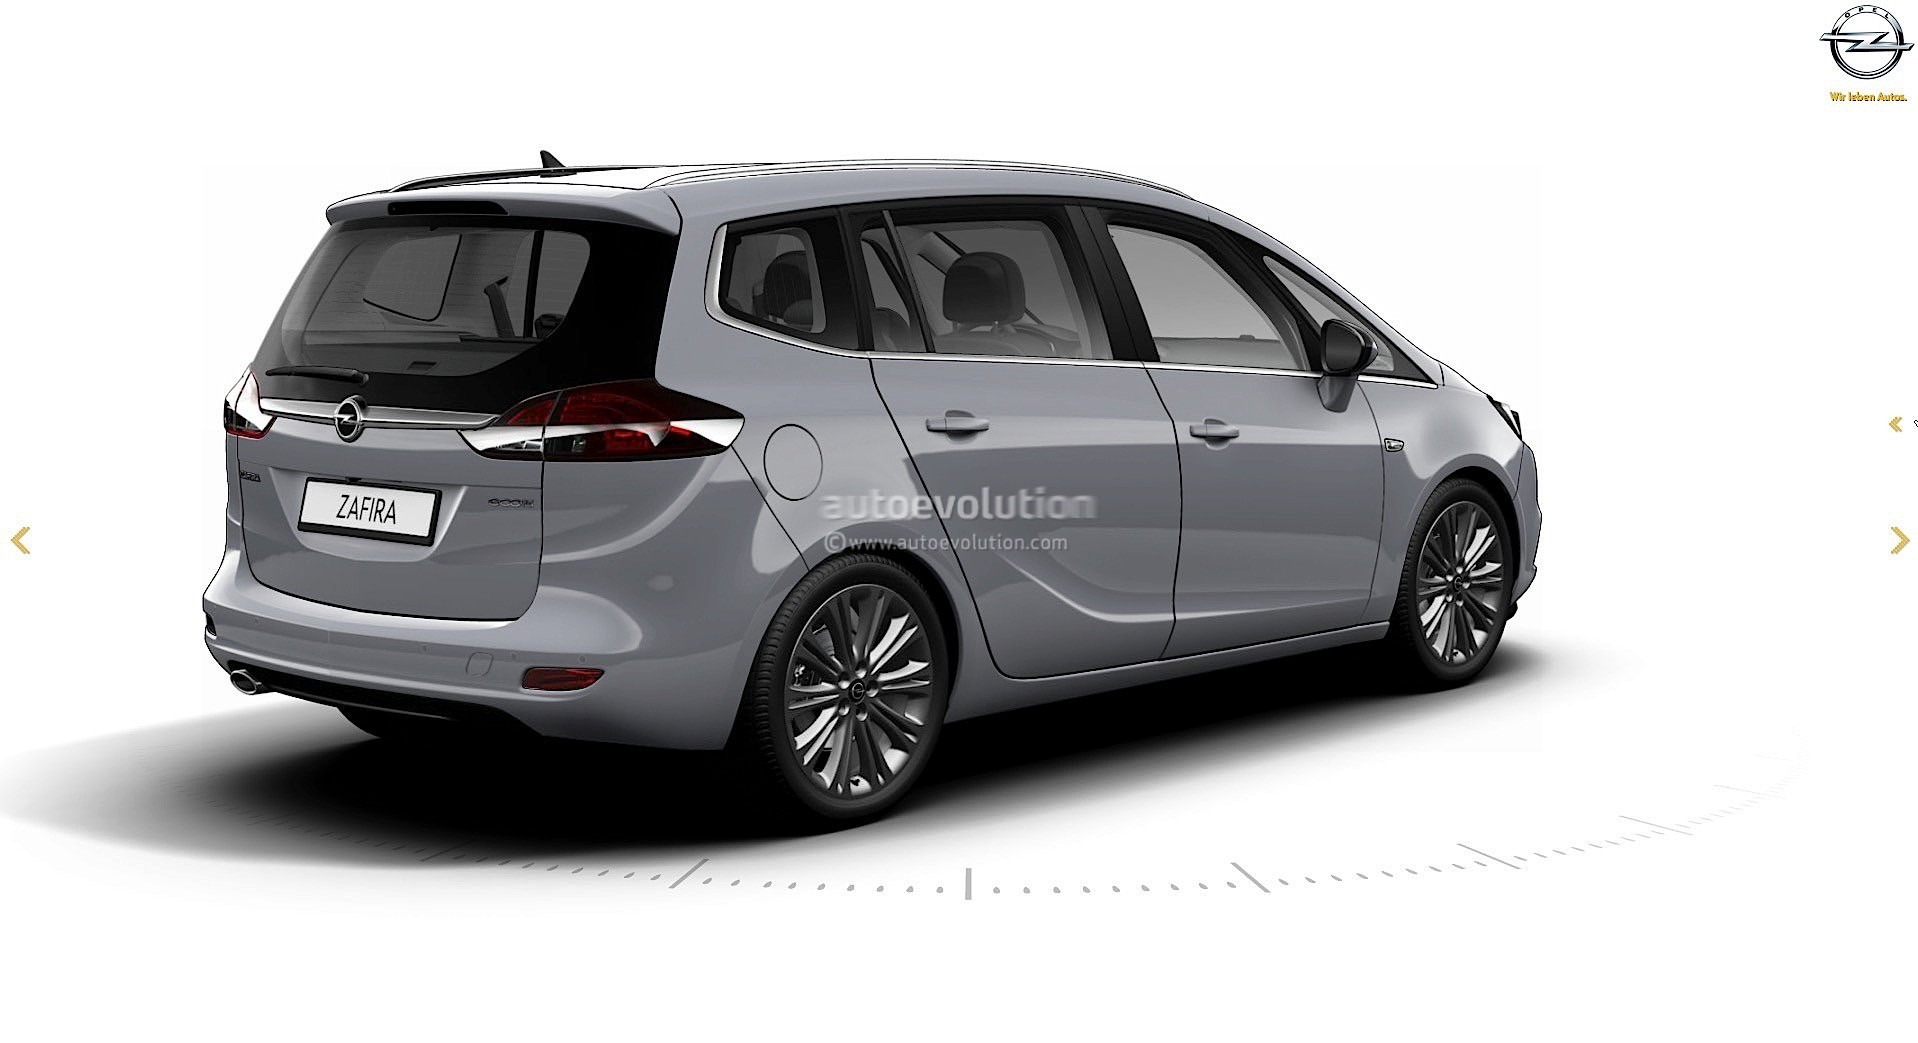 2018 Opel Zafira photo - 2